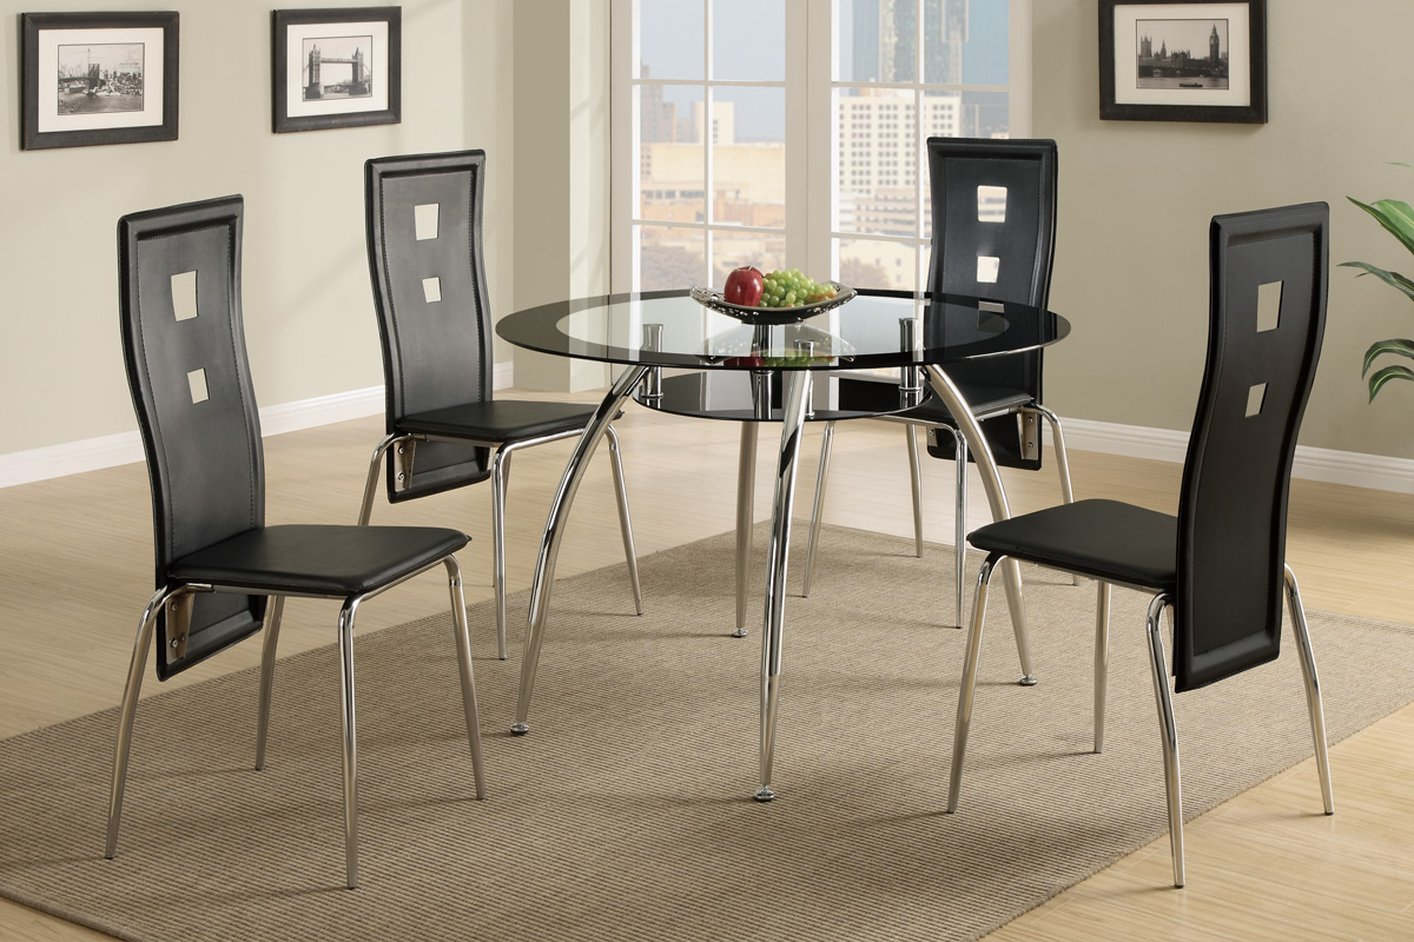 poundex f glass kitchen table Black Glass Dining Table